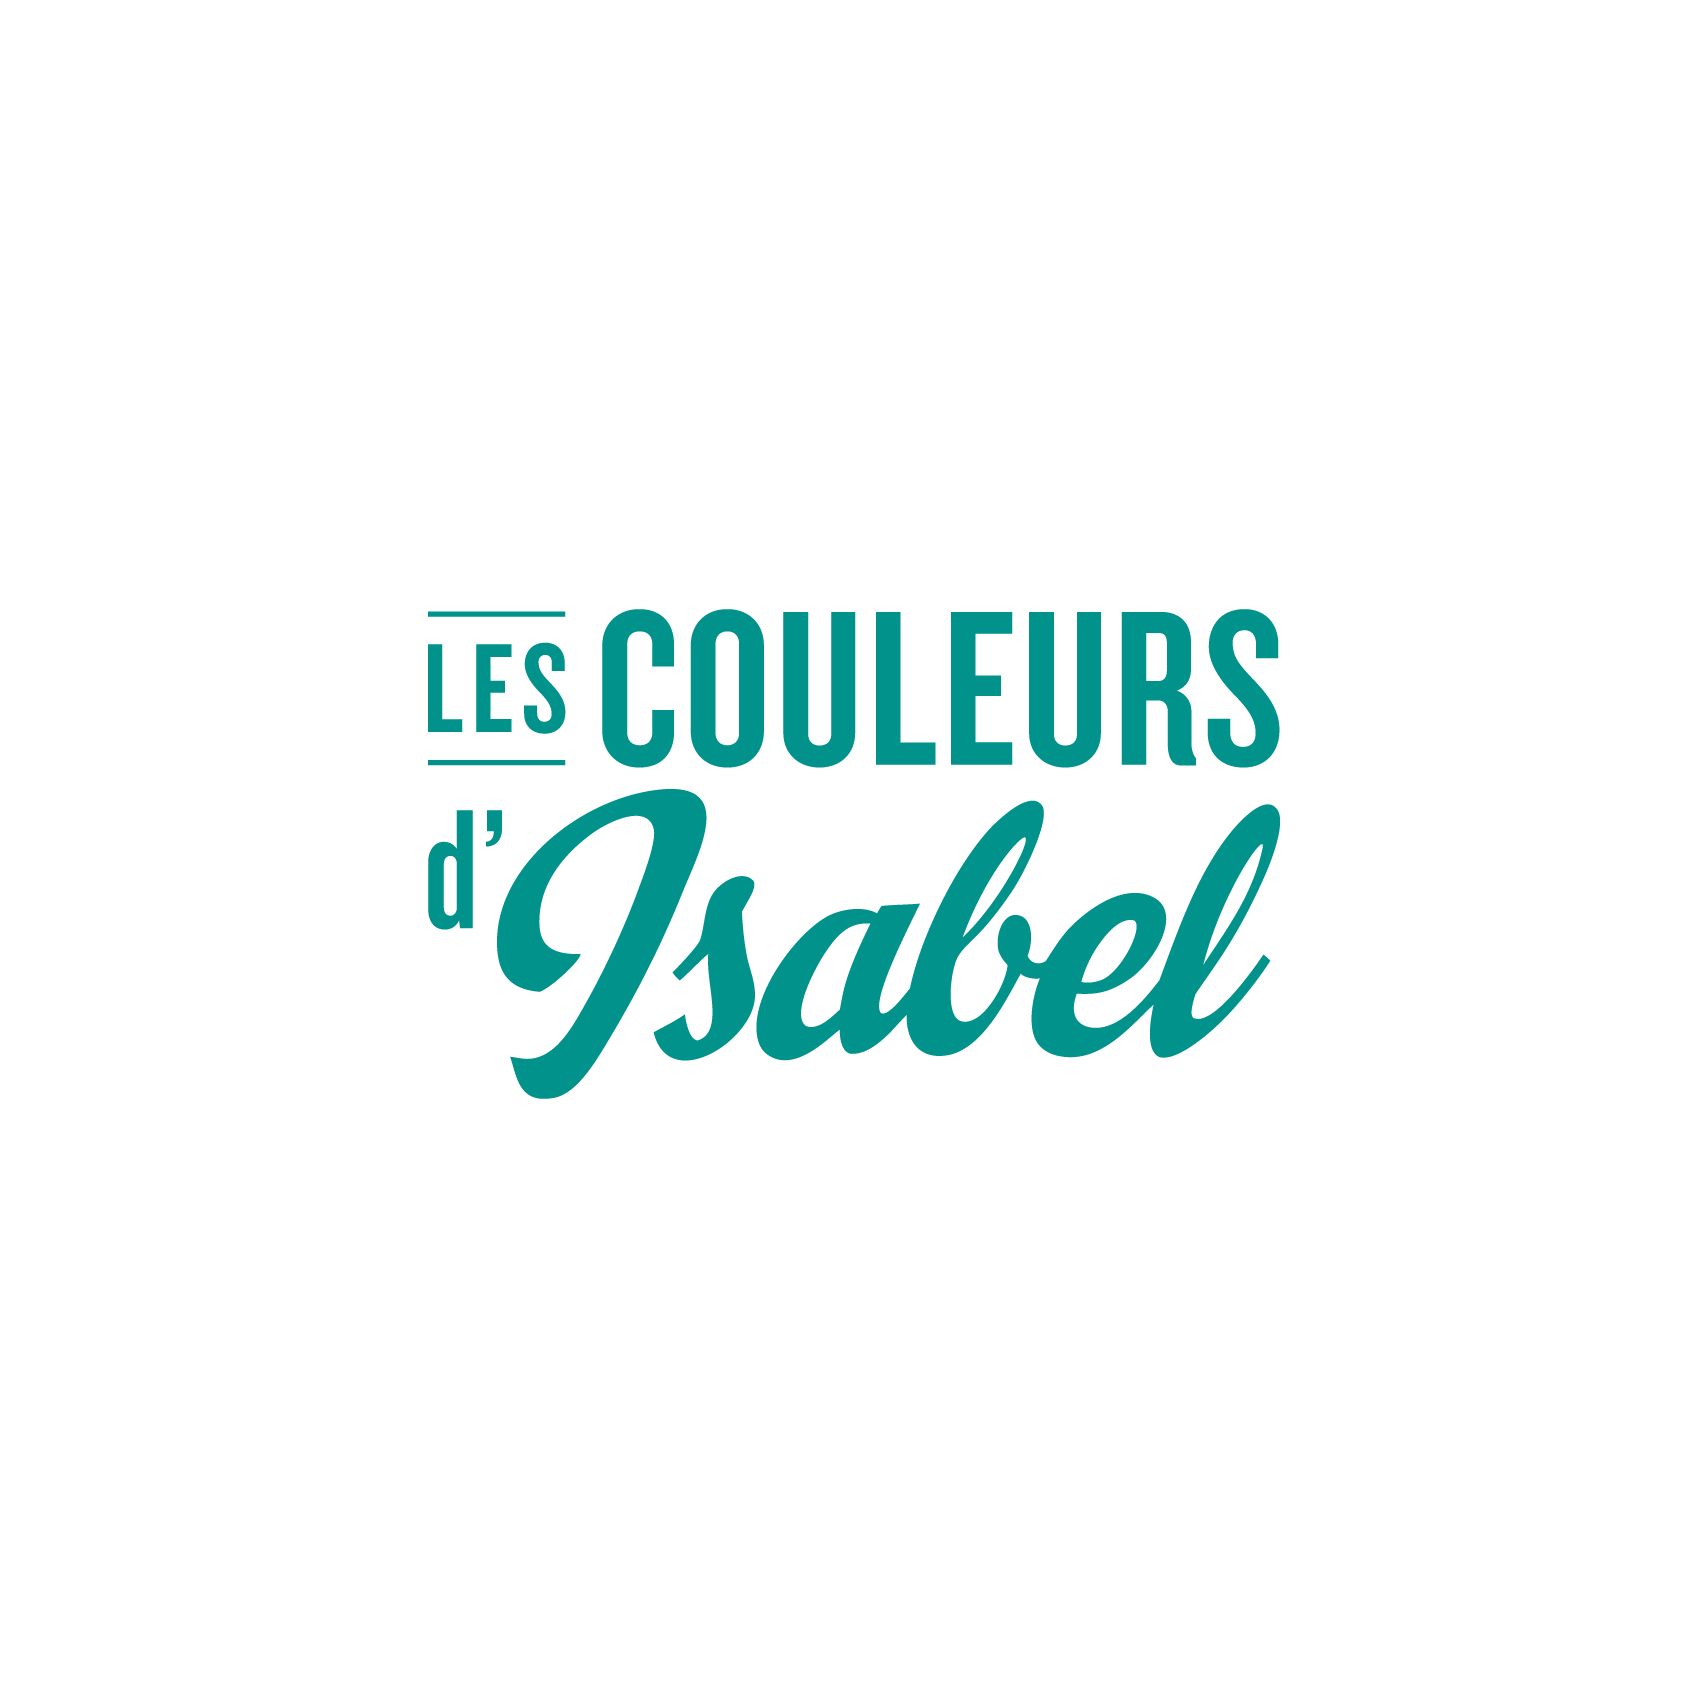 MlleRouge_logos_LesCouleursdIsabel